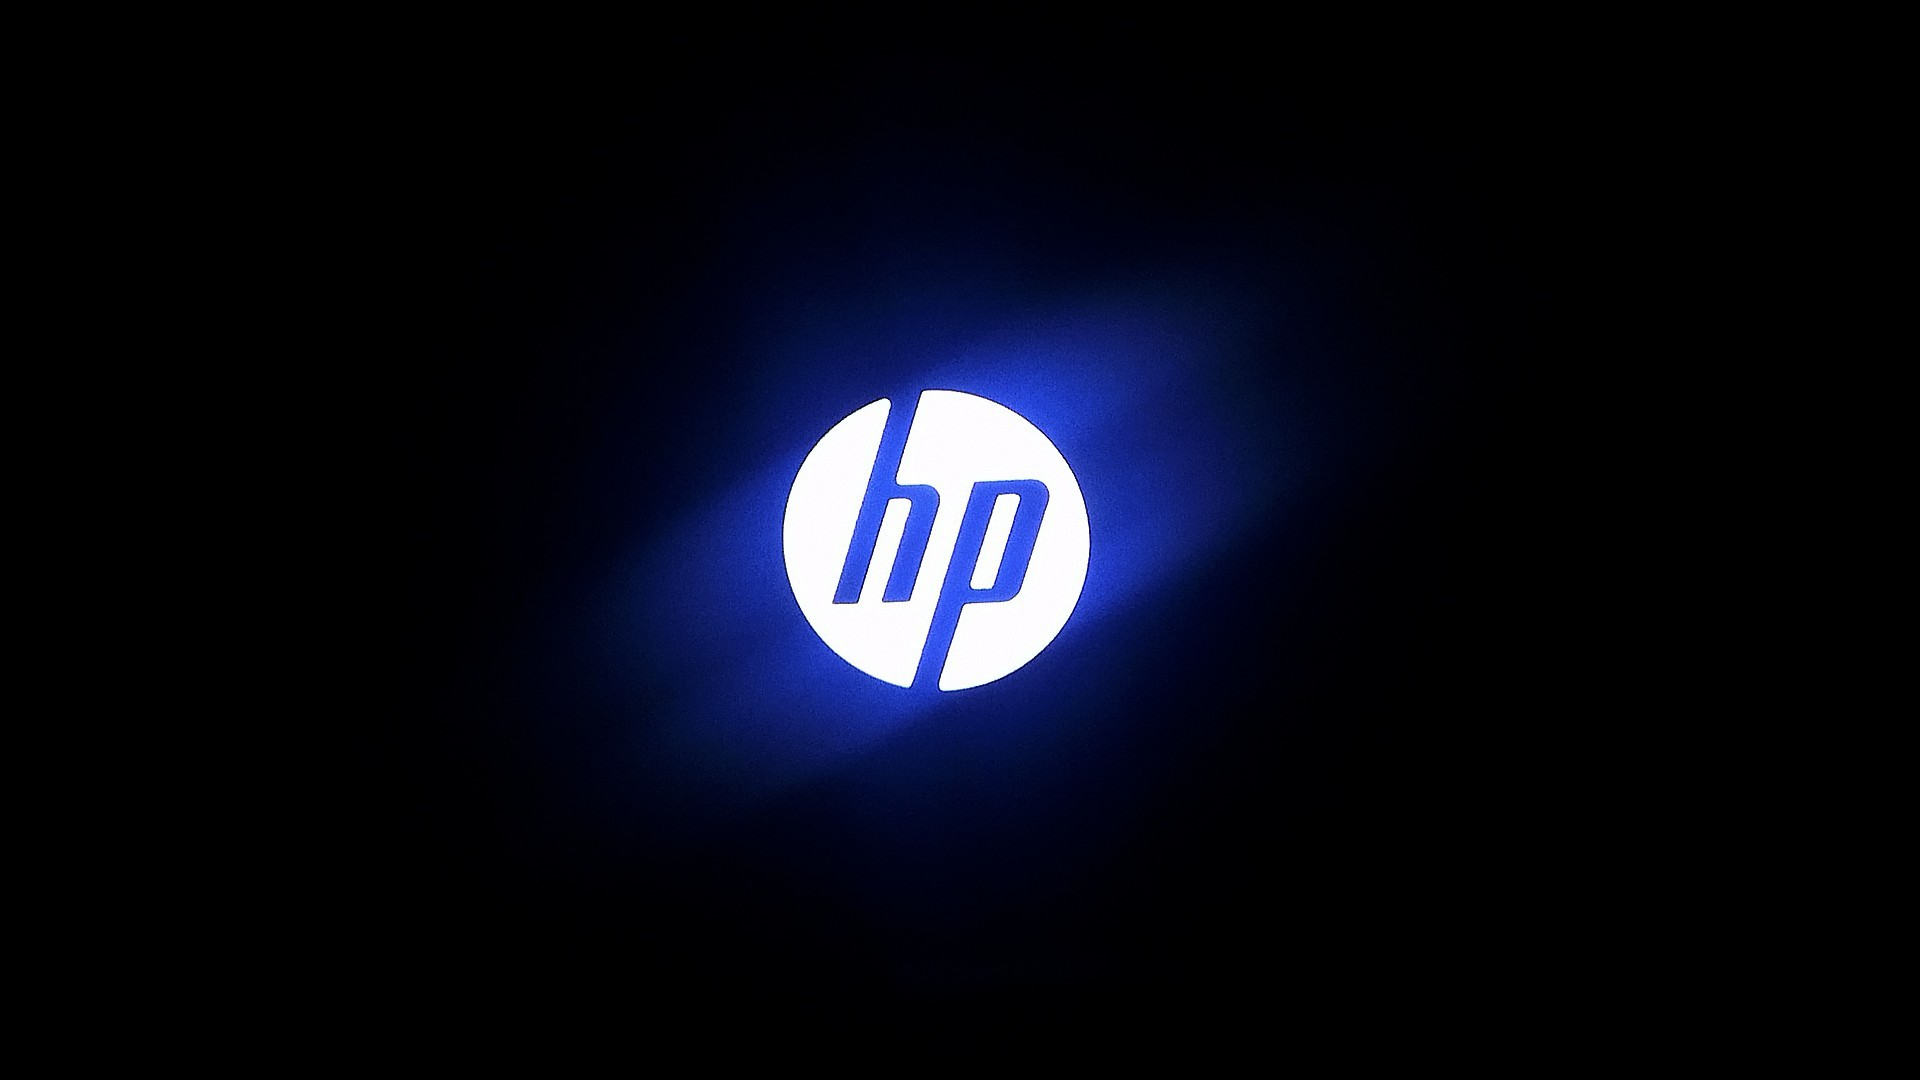 hp laptop wallpapers (65+ images)